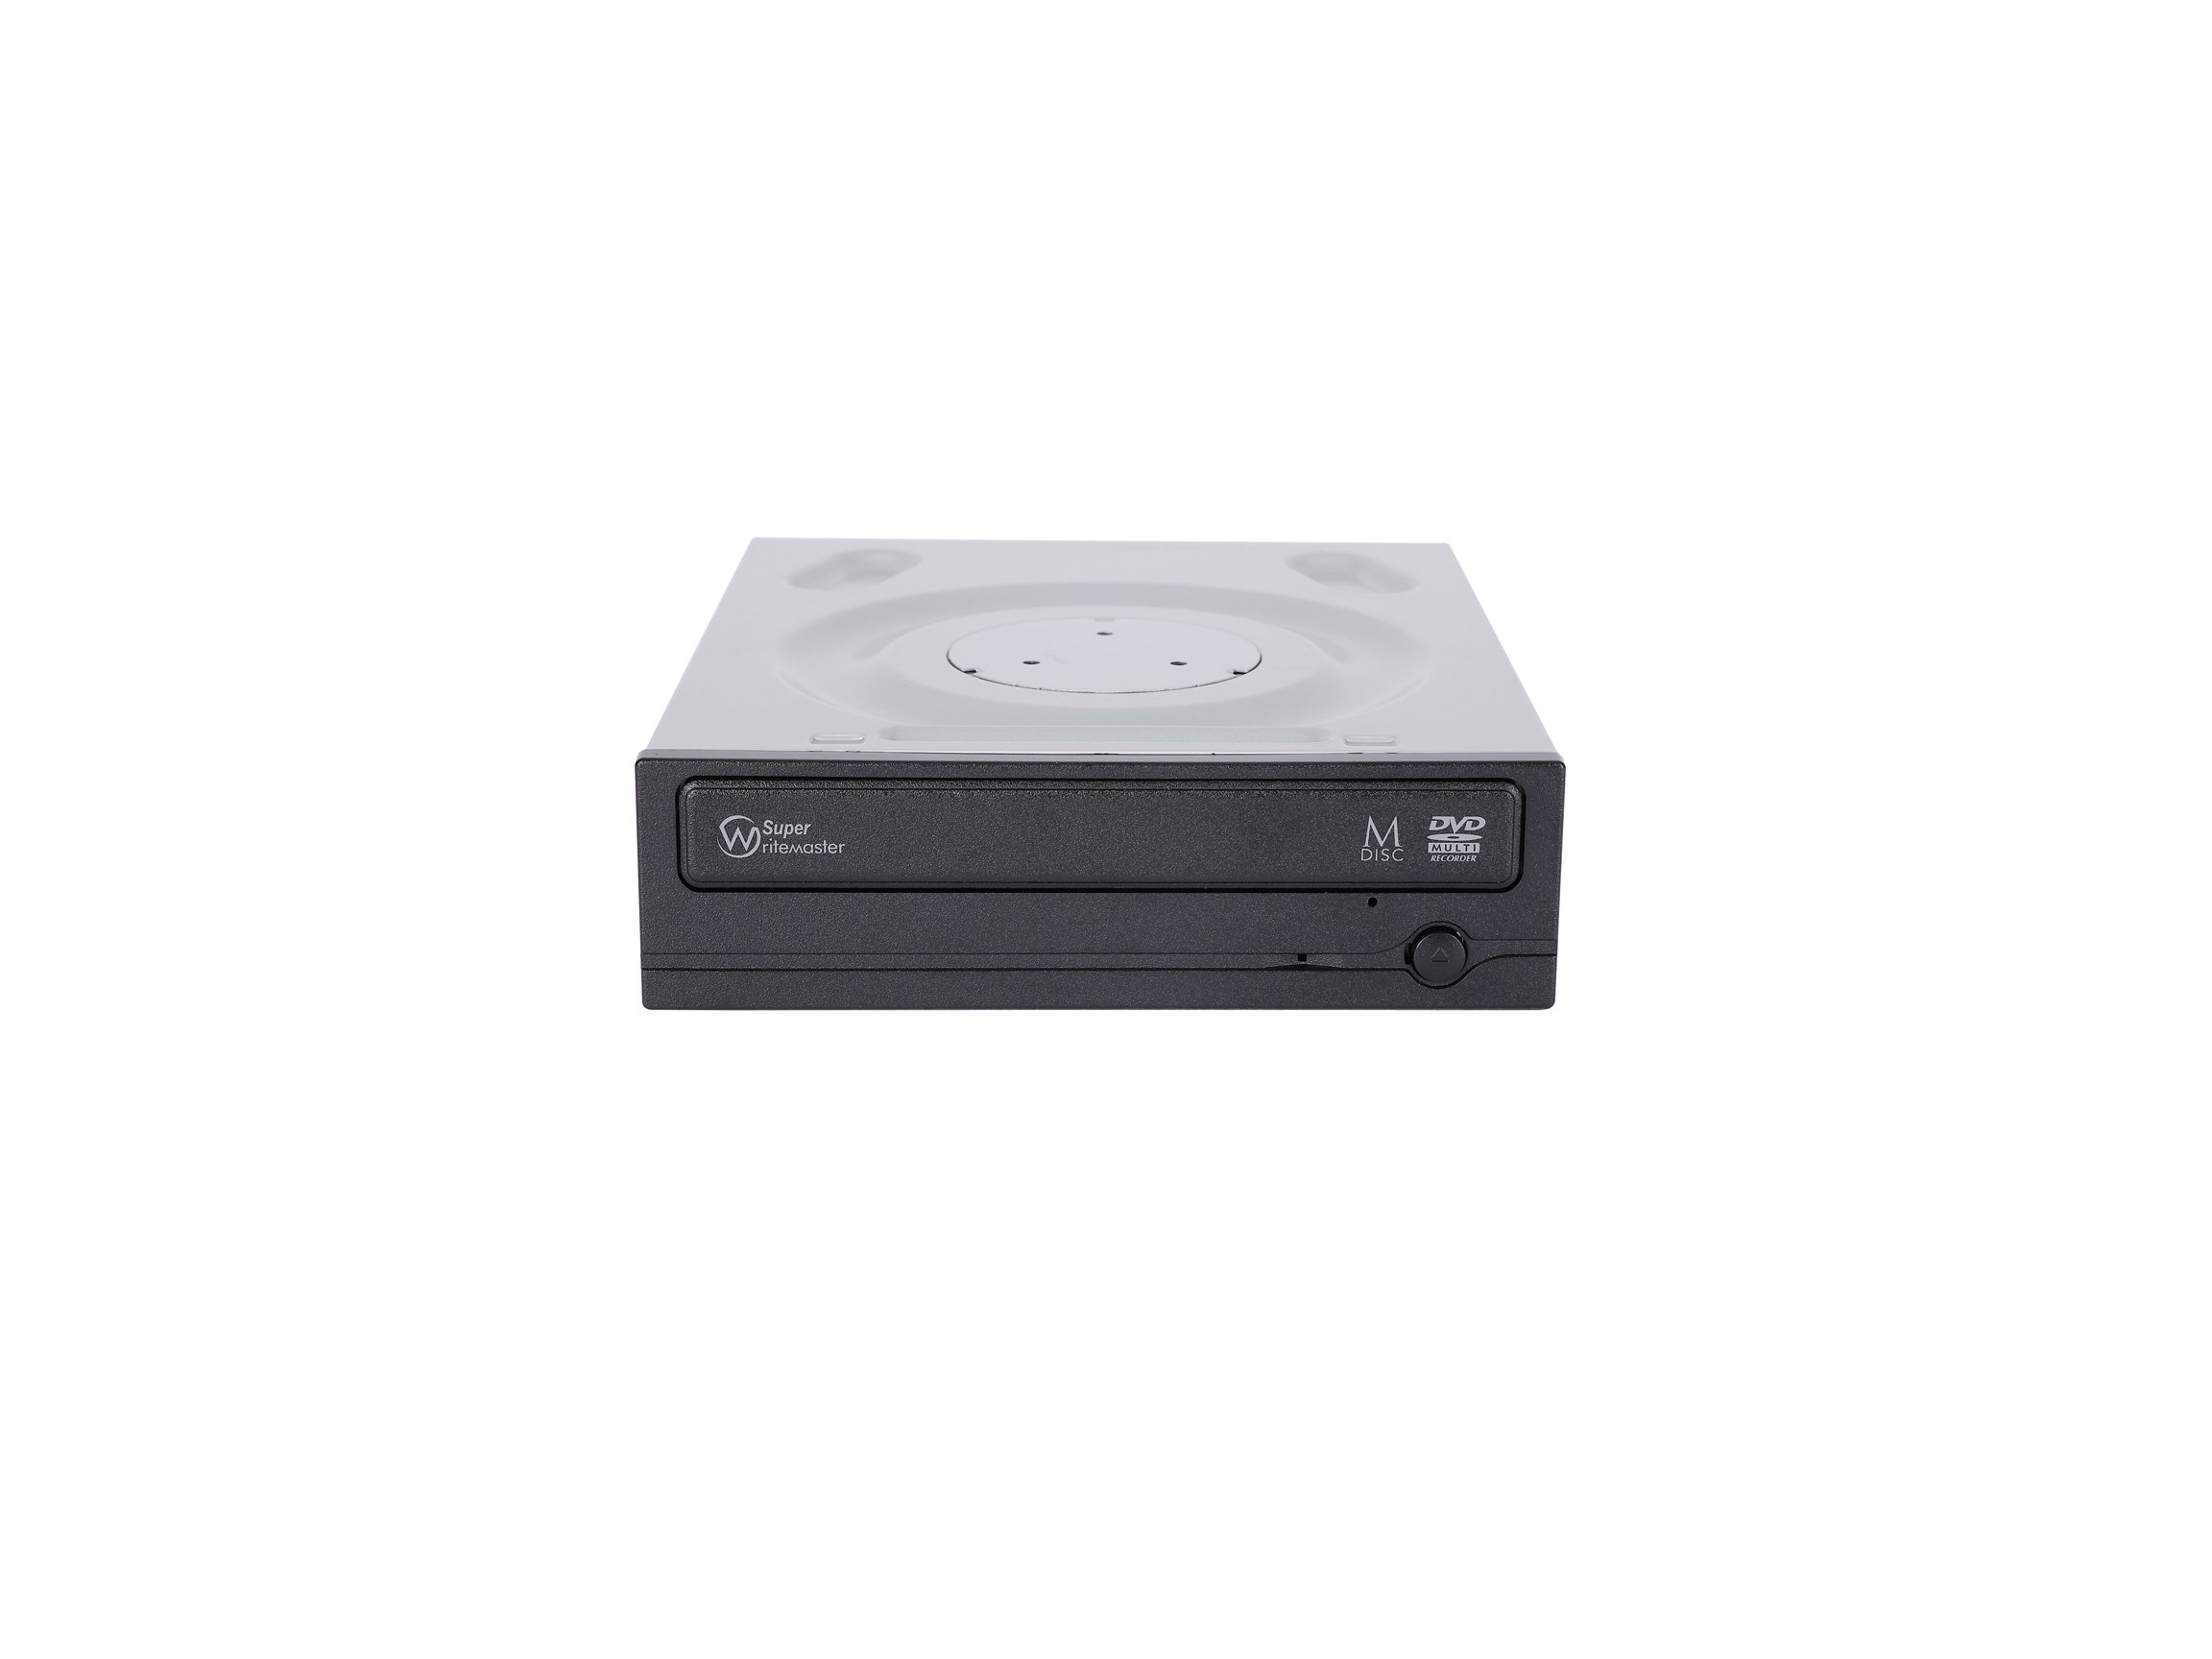 Samsung Electronics DVDRW Drive Optical Drives SH-224GB/BSBE